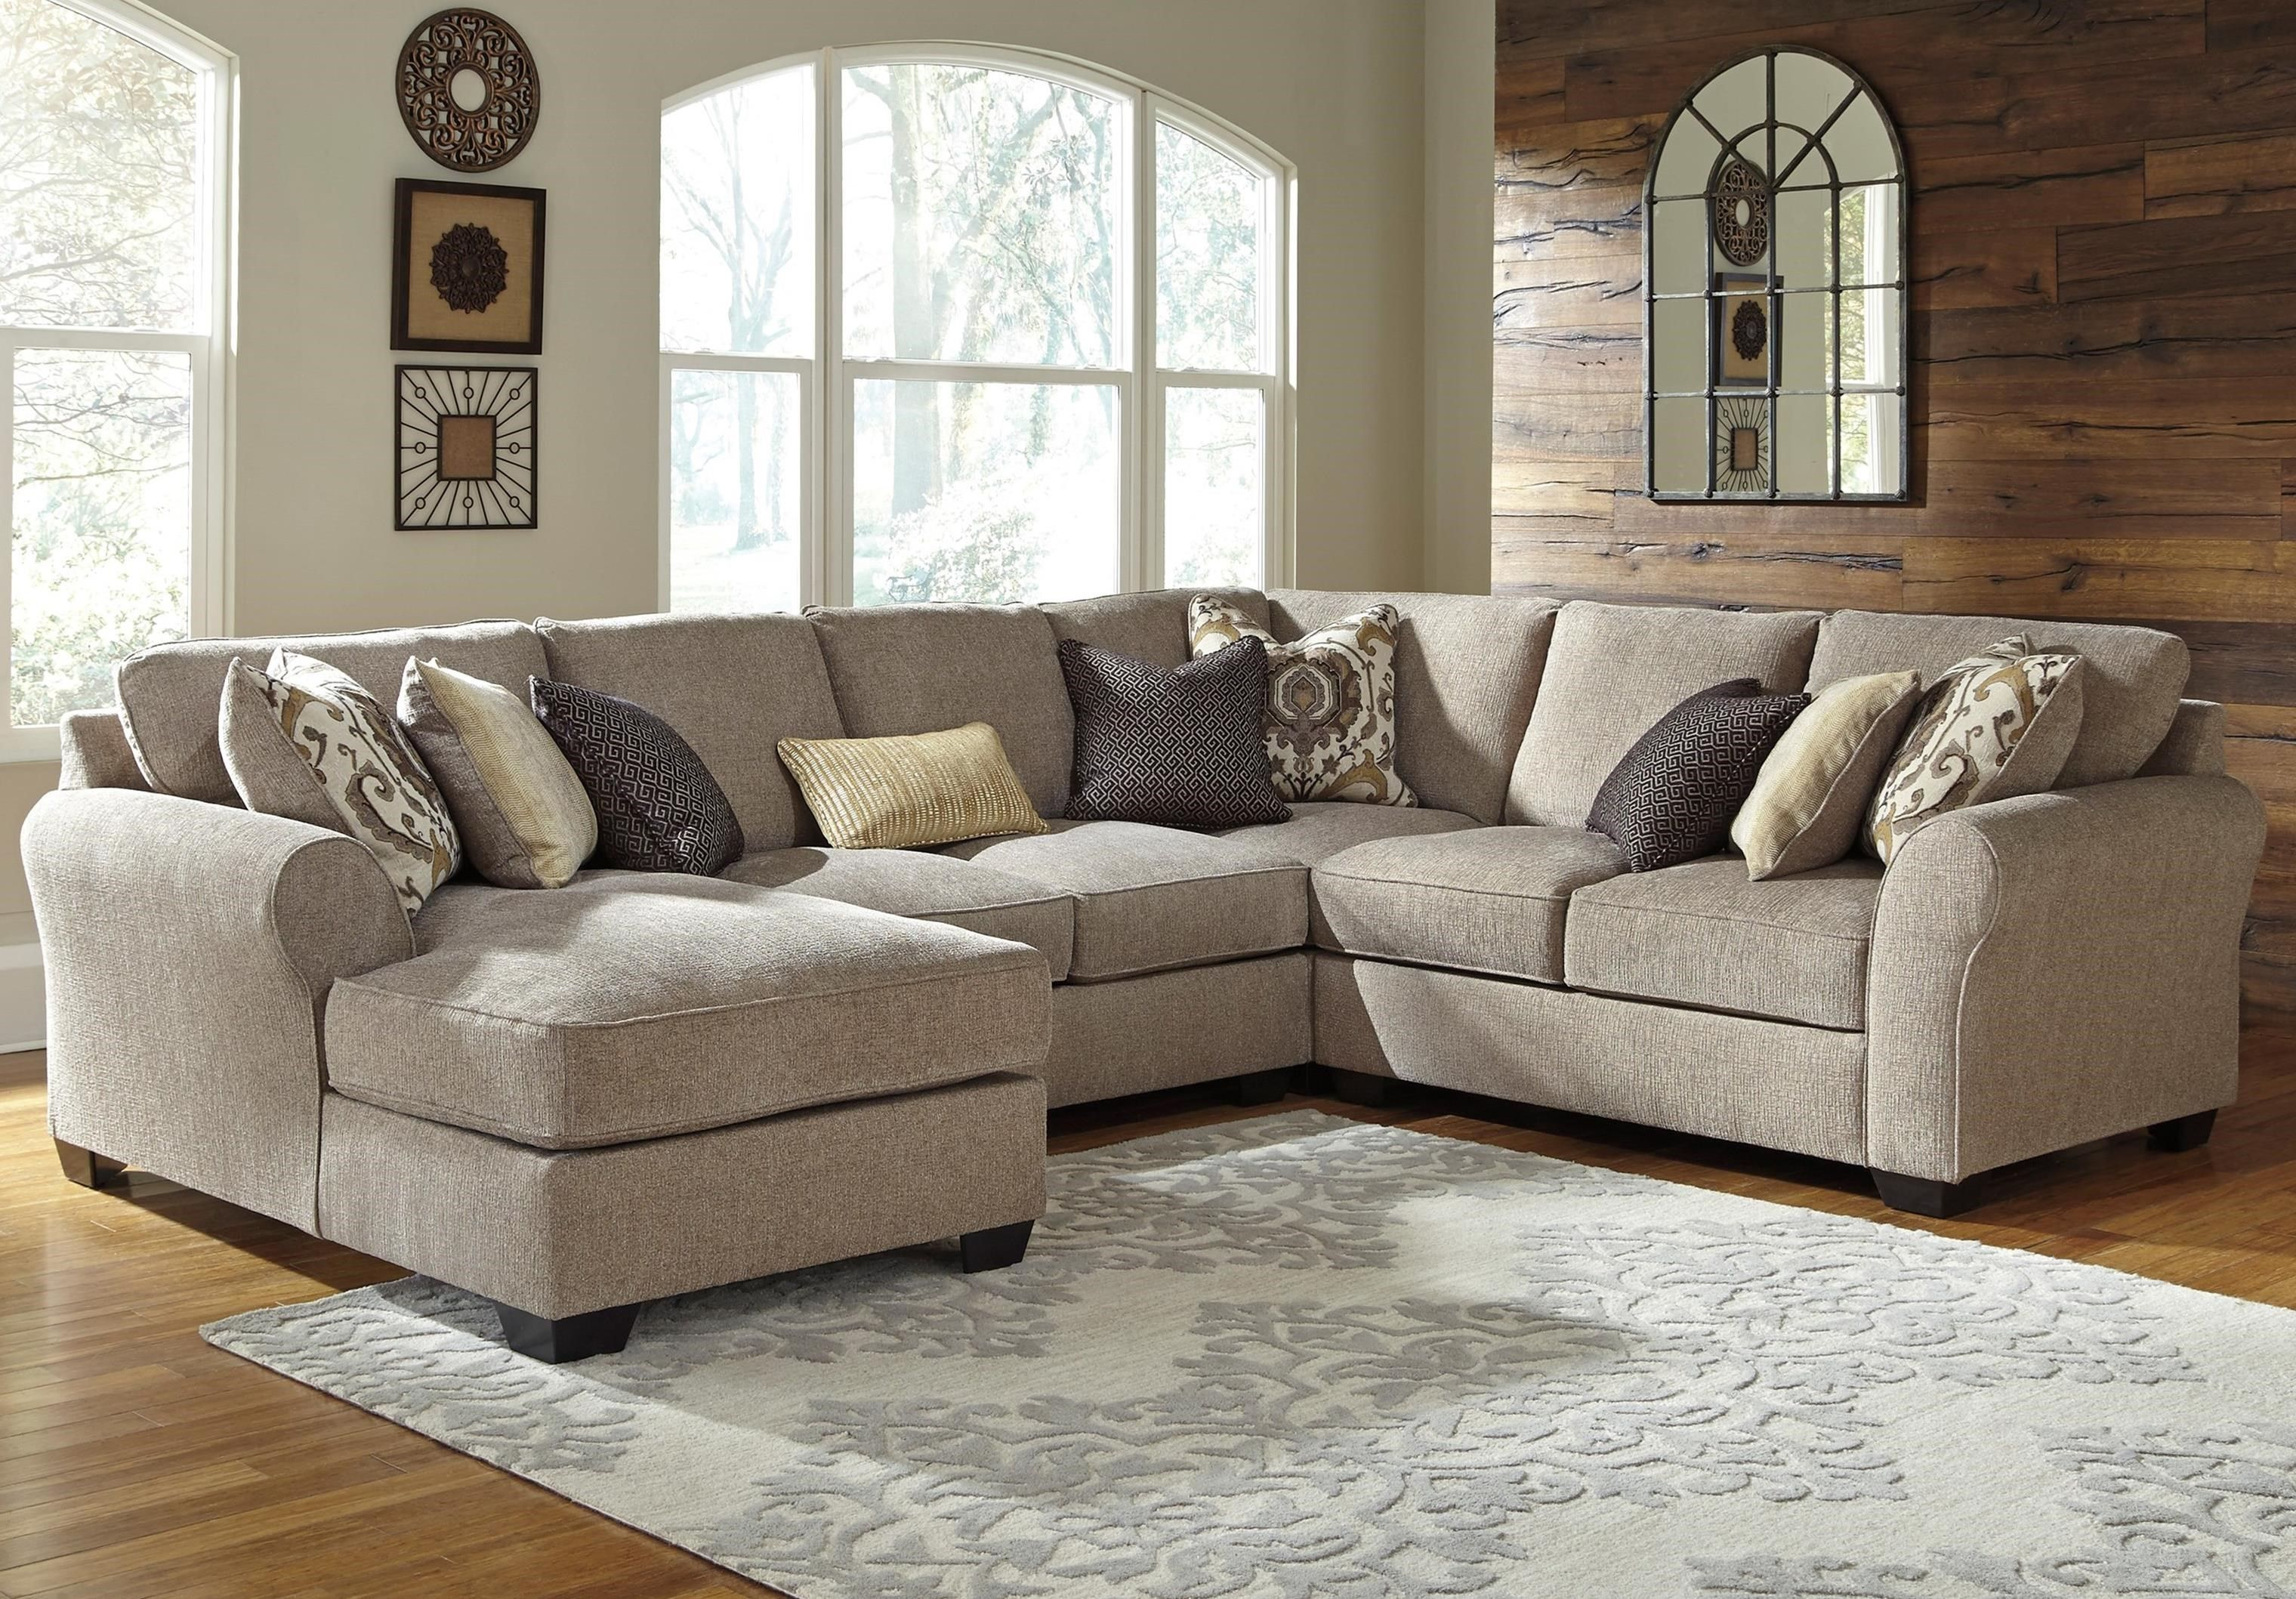 chair sofa blanche furniture left ottoman sophia right size small sleeper village design bed kitchen milford full chaise cuddler couch of go modern dfs sectional leather recliner home to with sofas